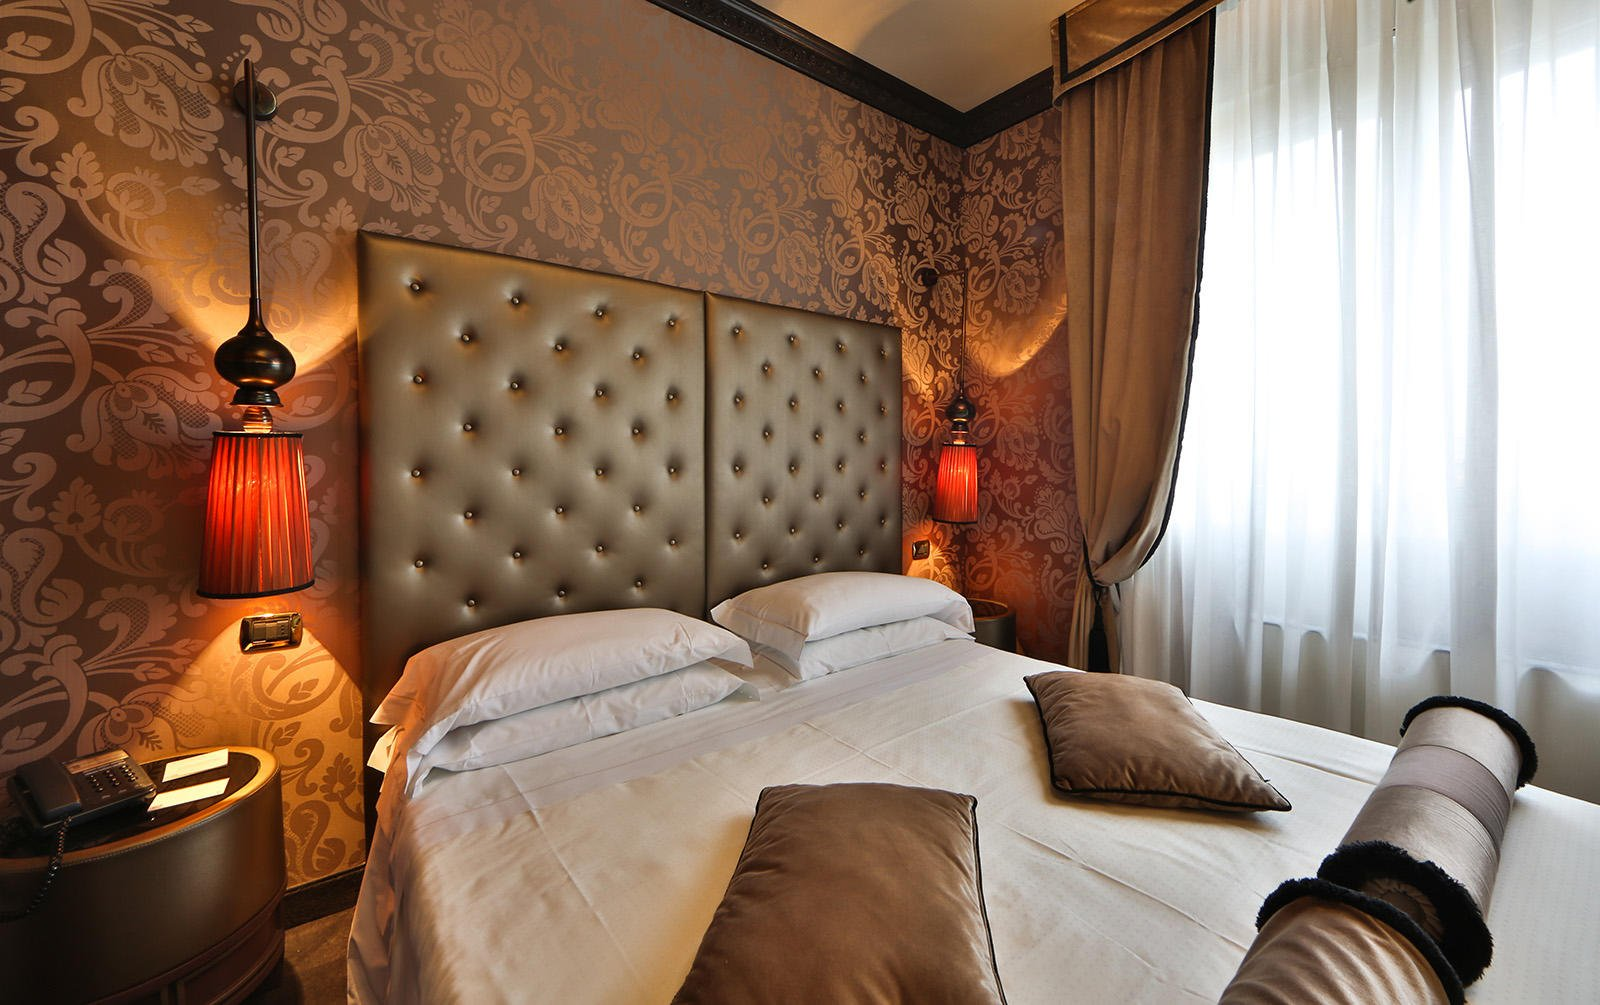 Suite at Hotel Mozart in Milan